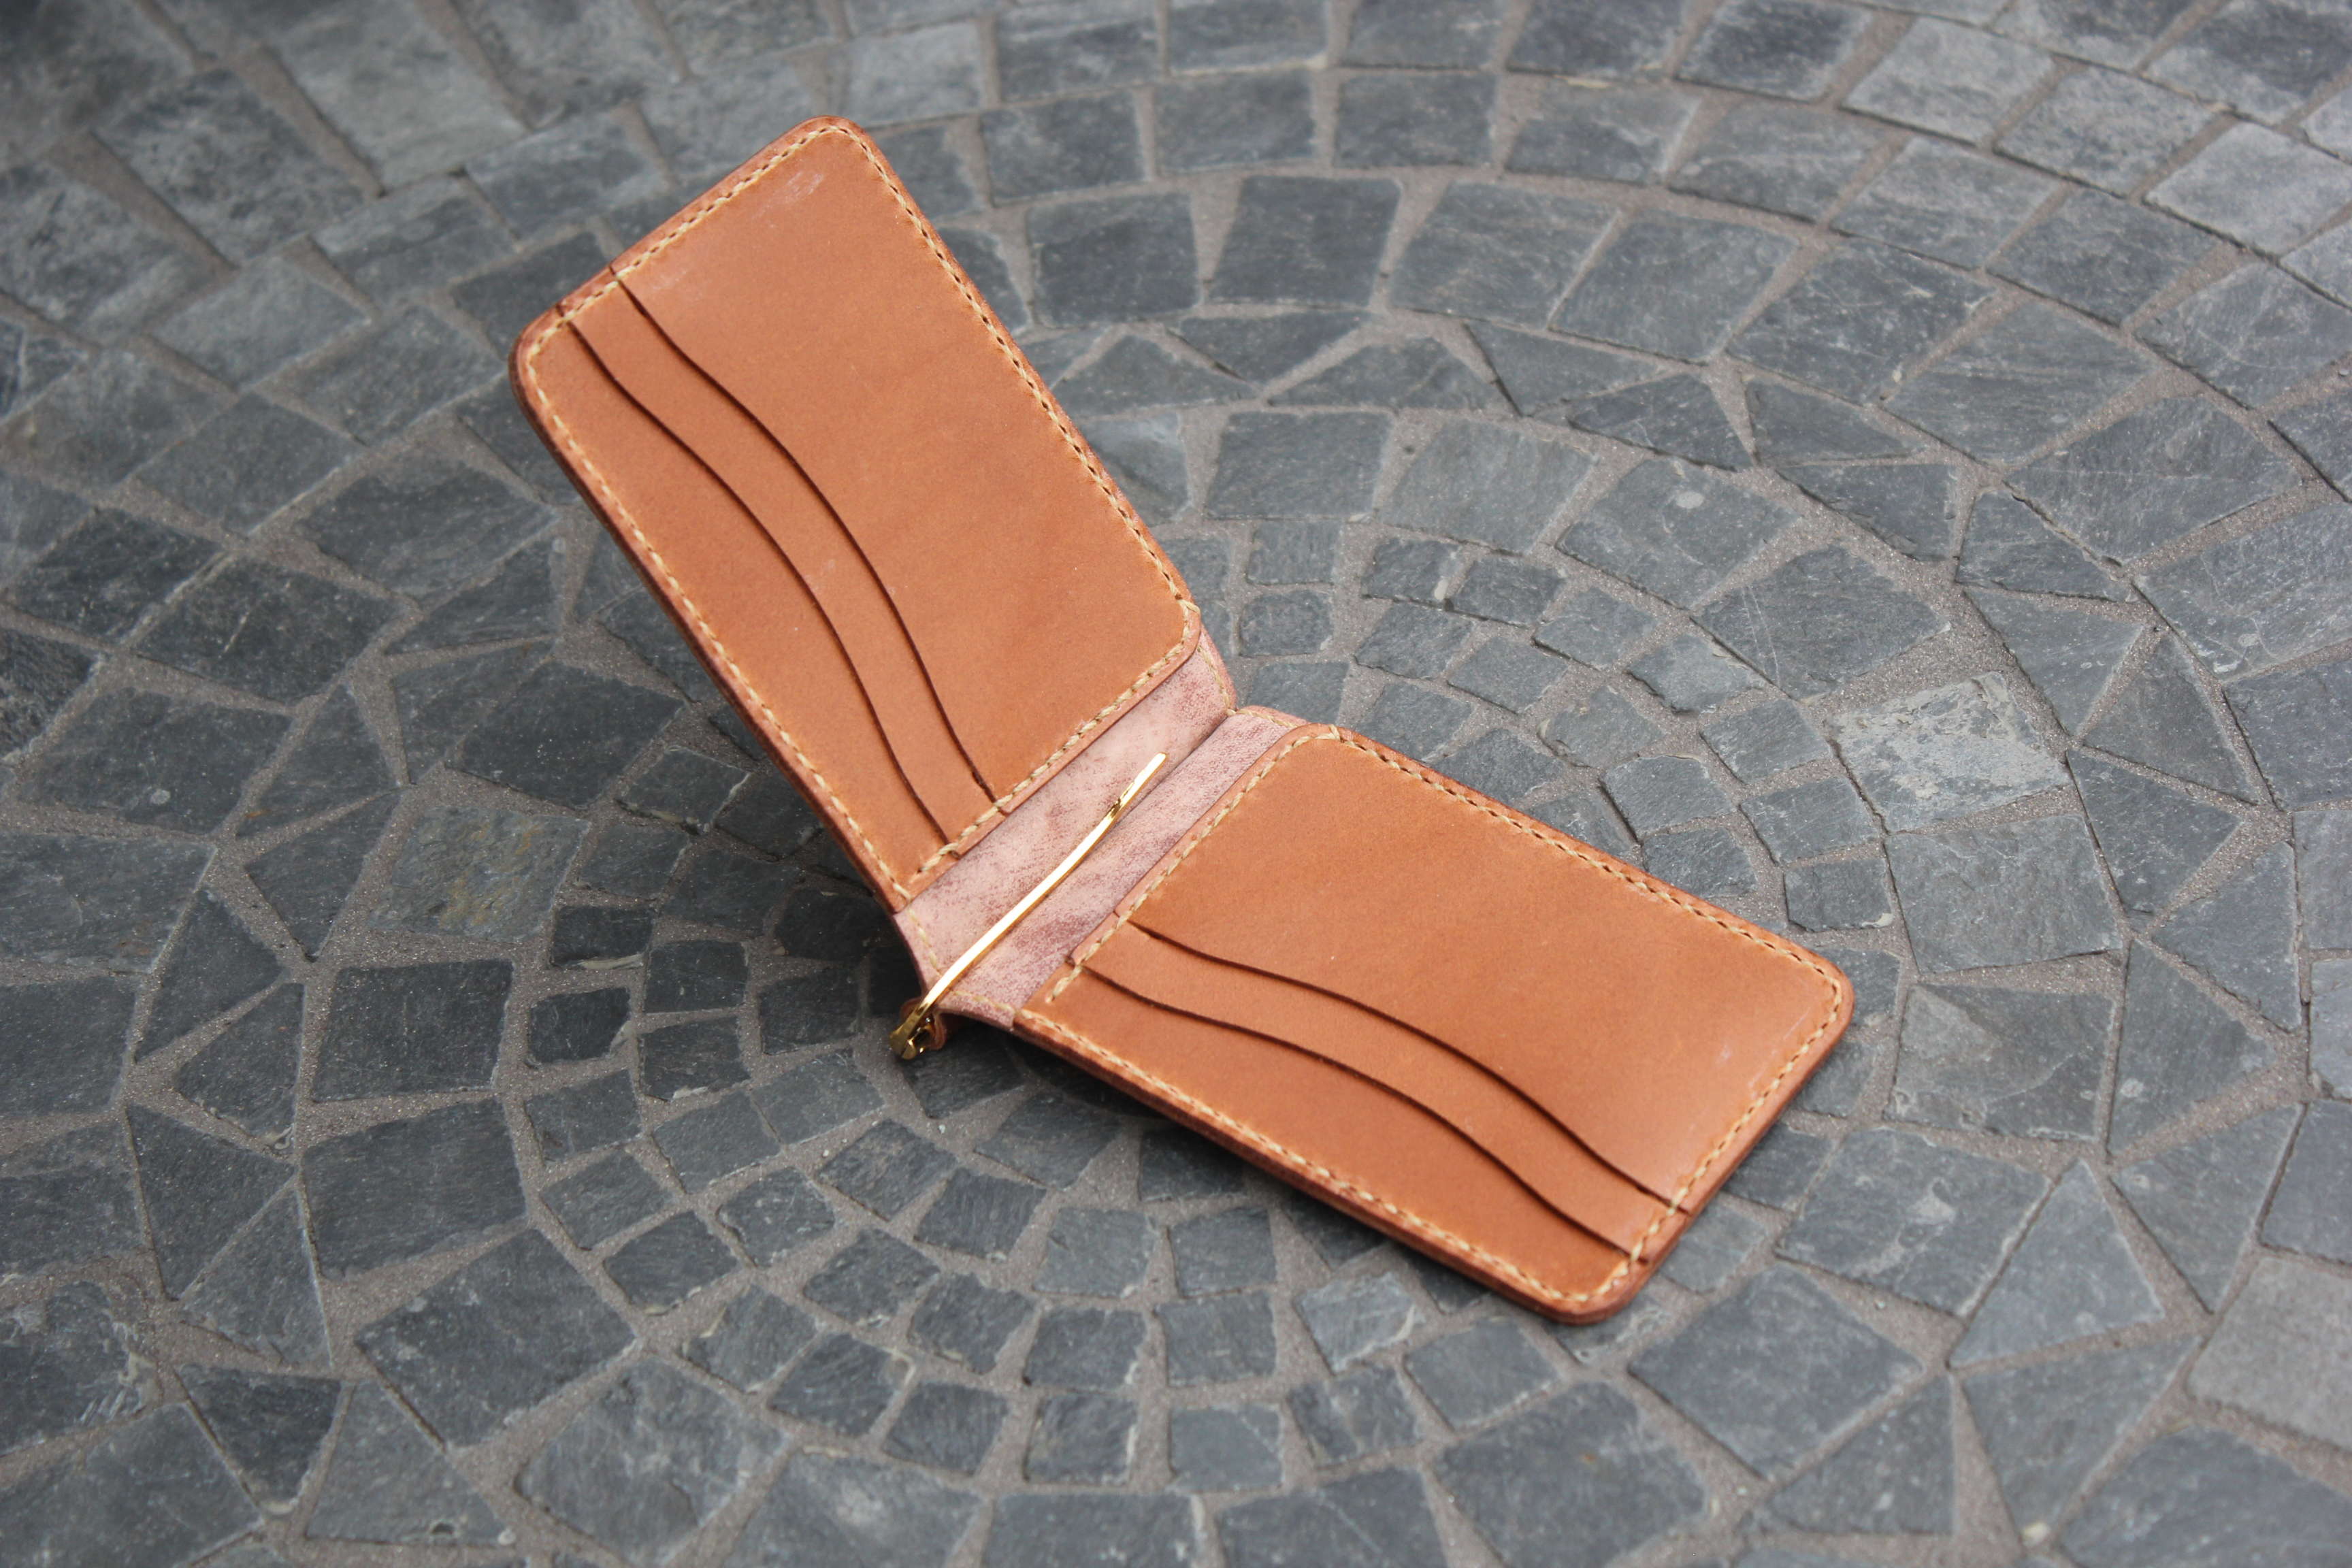 b4b9b5b72063 And finally  hmlarsson s wallet. Shinki Hikaku Lava exterior (fully  stitched) and Clayton Green Shell Cordovan interior with extra deep pockets  which are ...